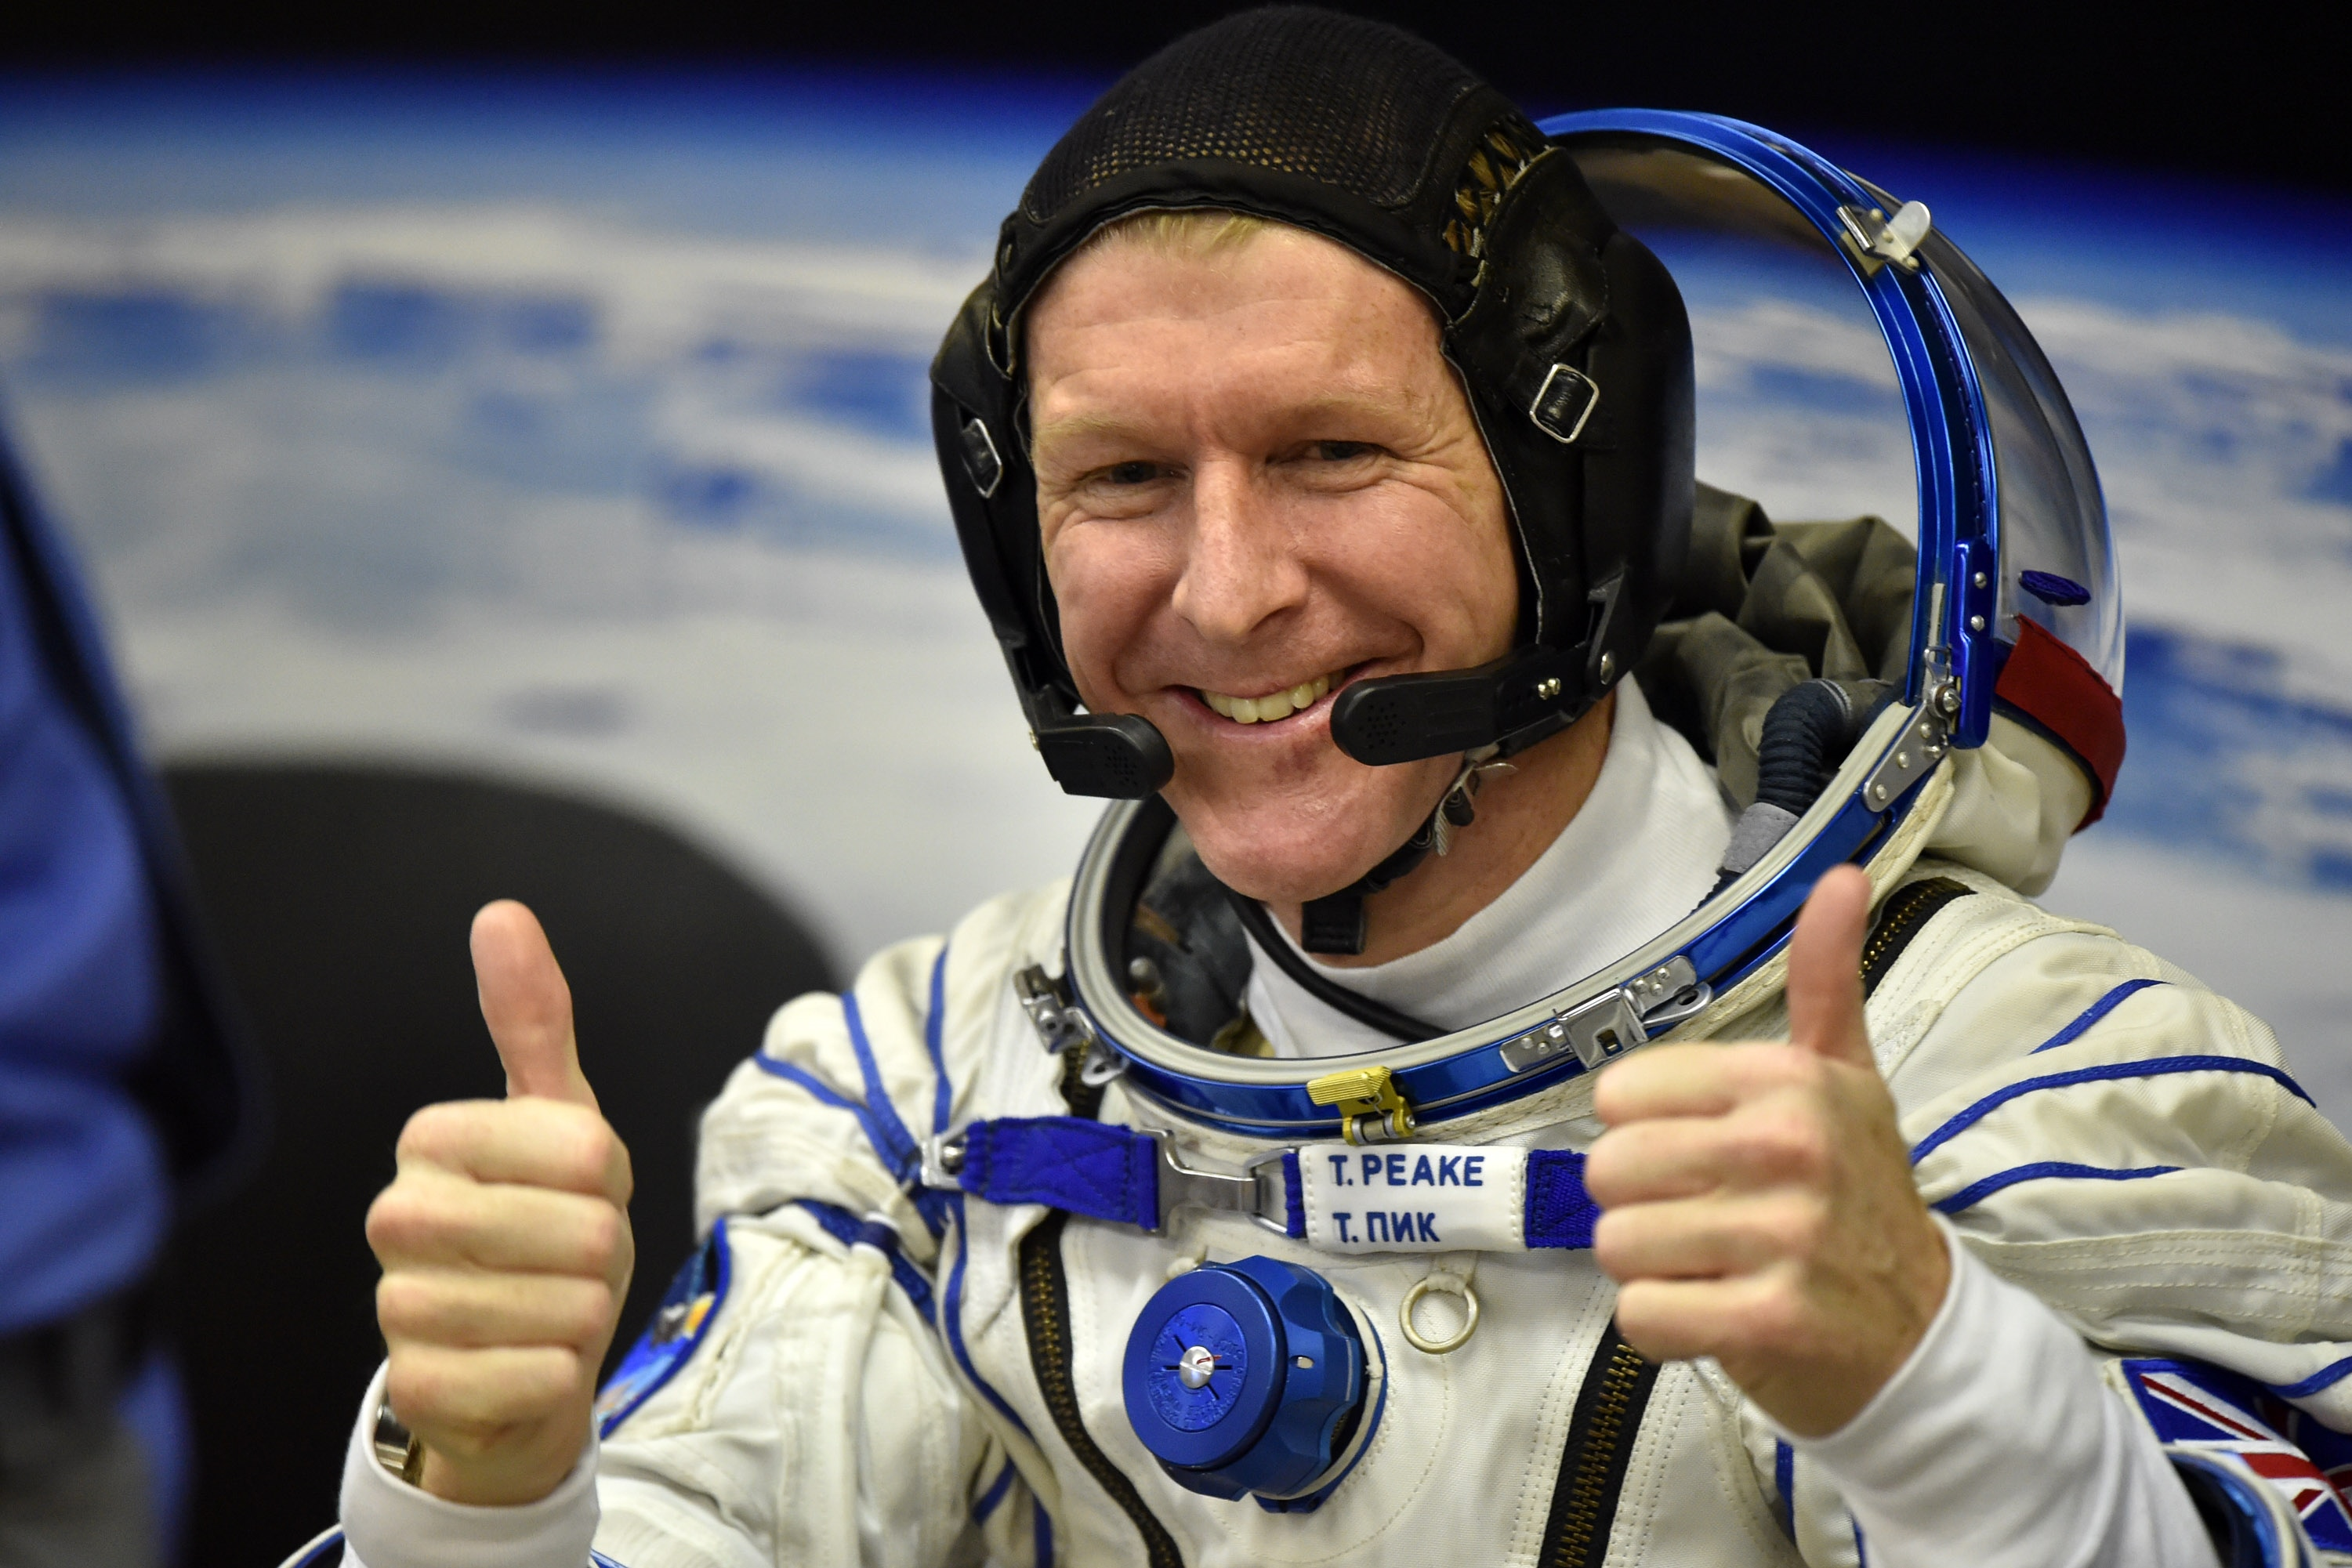 Britain's astronaut Tim Peake gestures as his space suit is tested at the Russian-leased Baikonur cosmodrome, prior to blasting off to the International Space Station (ISS), on Dec. 15, 2015.